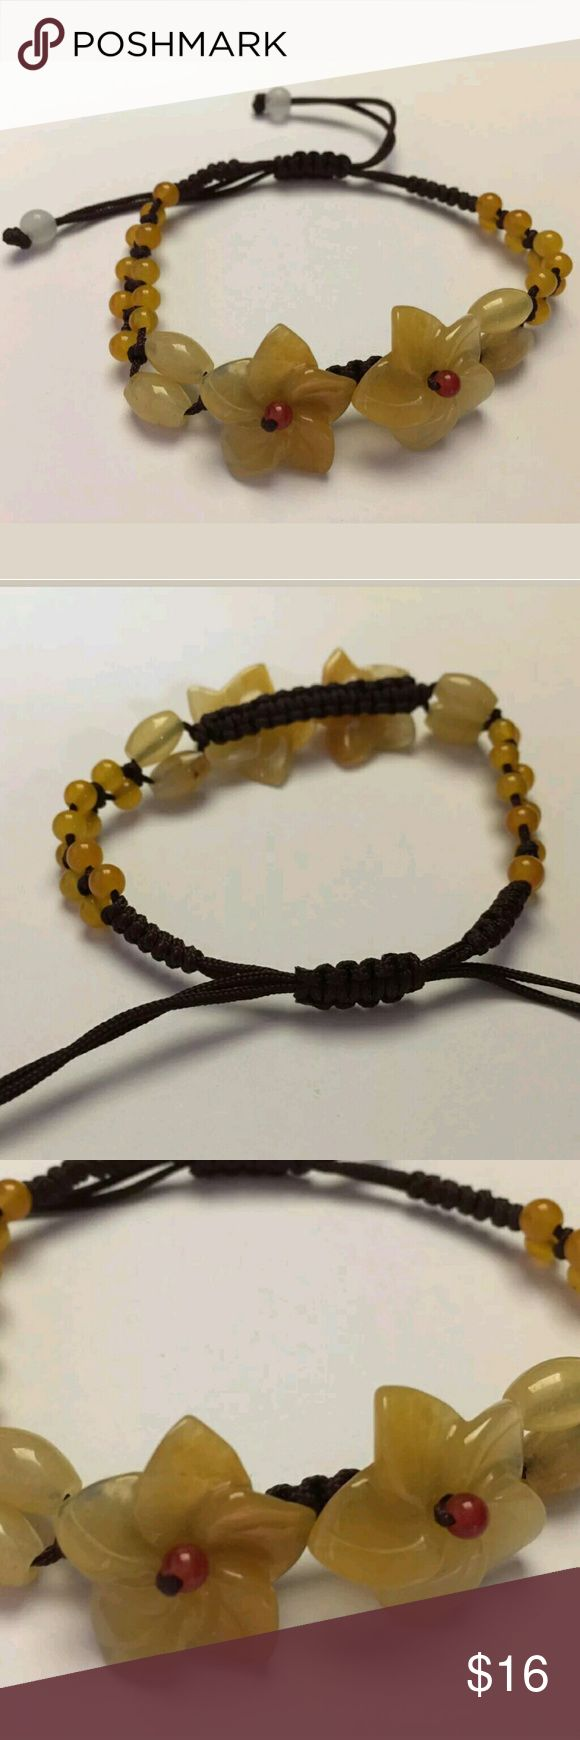 """NWOT Hawaiian Real Shell Hemp Bracelet For your consideration is a NWOT artisan adjustable (6.5""""-9"""") Hawaiian real shell macrame hemp bracelet with a slipknot closure. Shell flowers measure 5/8"""" in diameter. Thank you. Boutique  Jewelry Bracelets"""